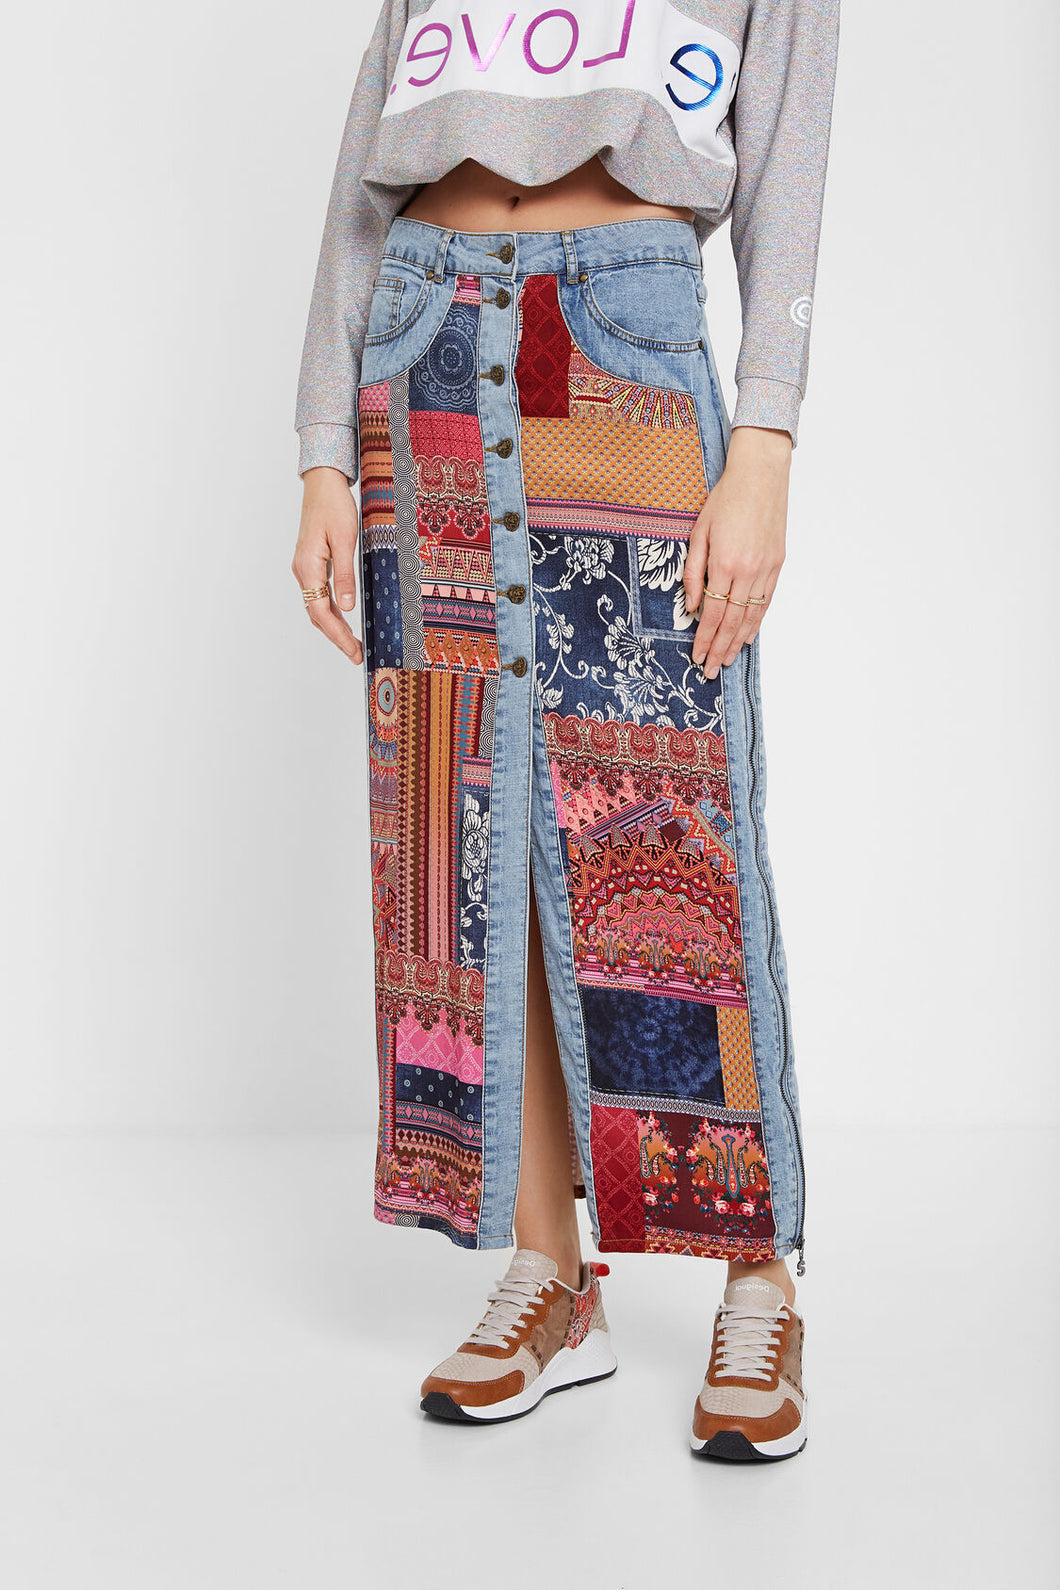 Desigual Grecia Transformable Denim Skirt